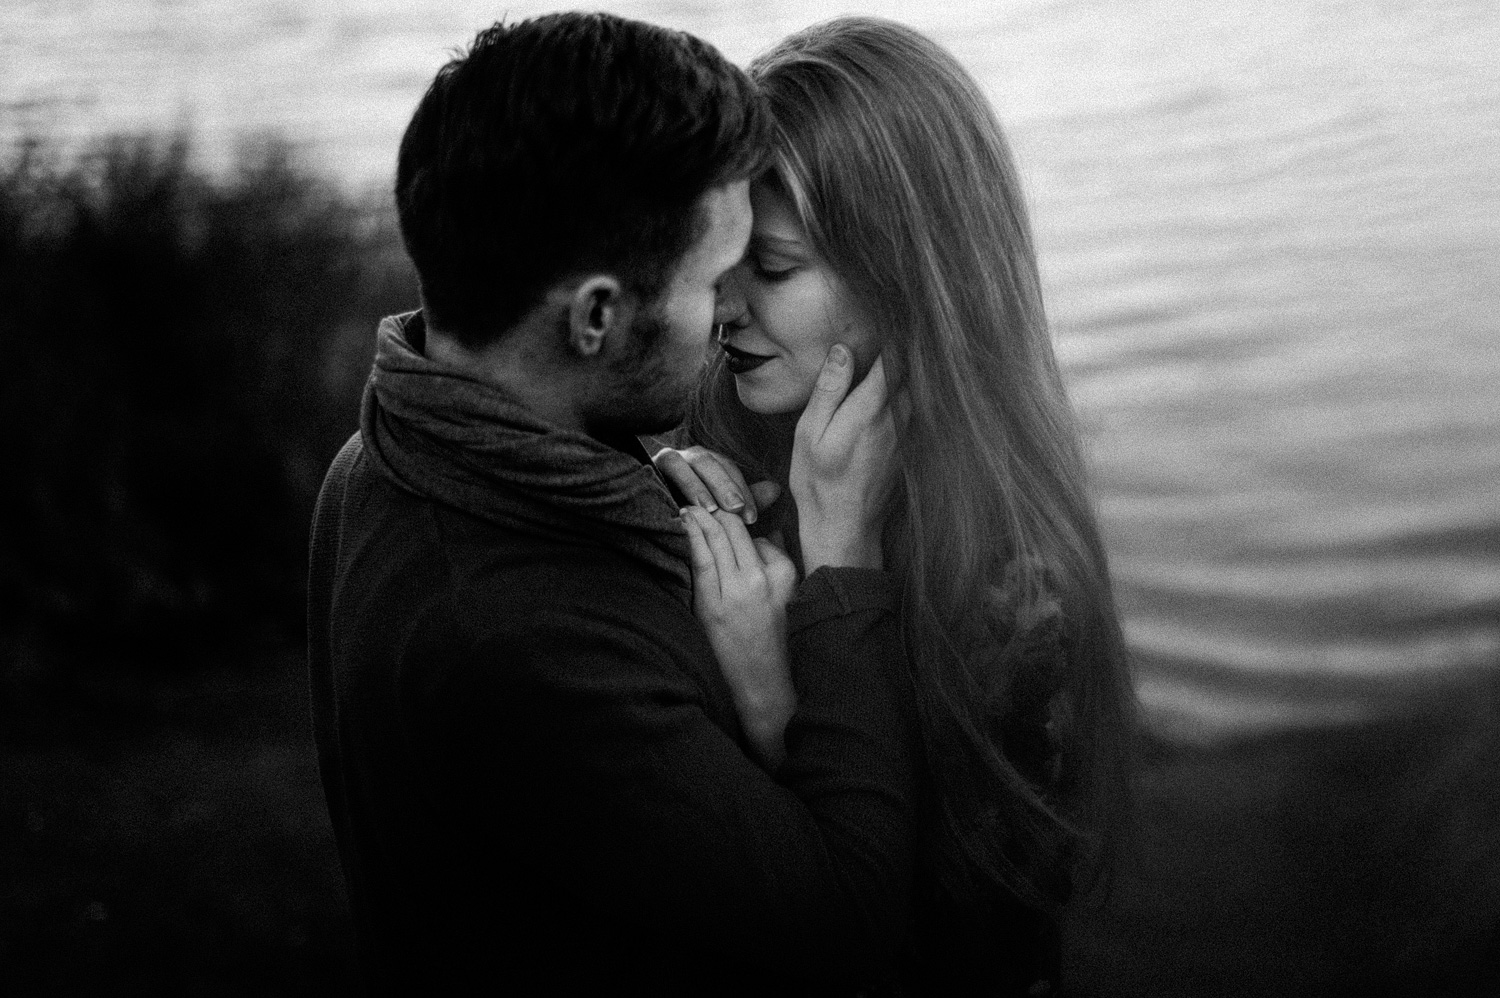 Couple facing holding each others faces in front of lake